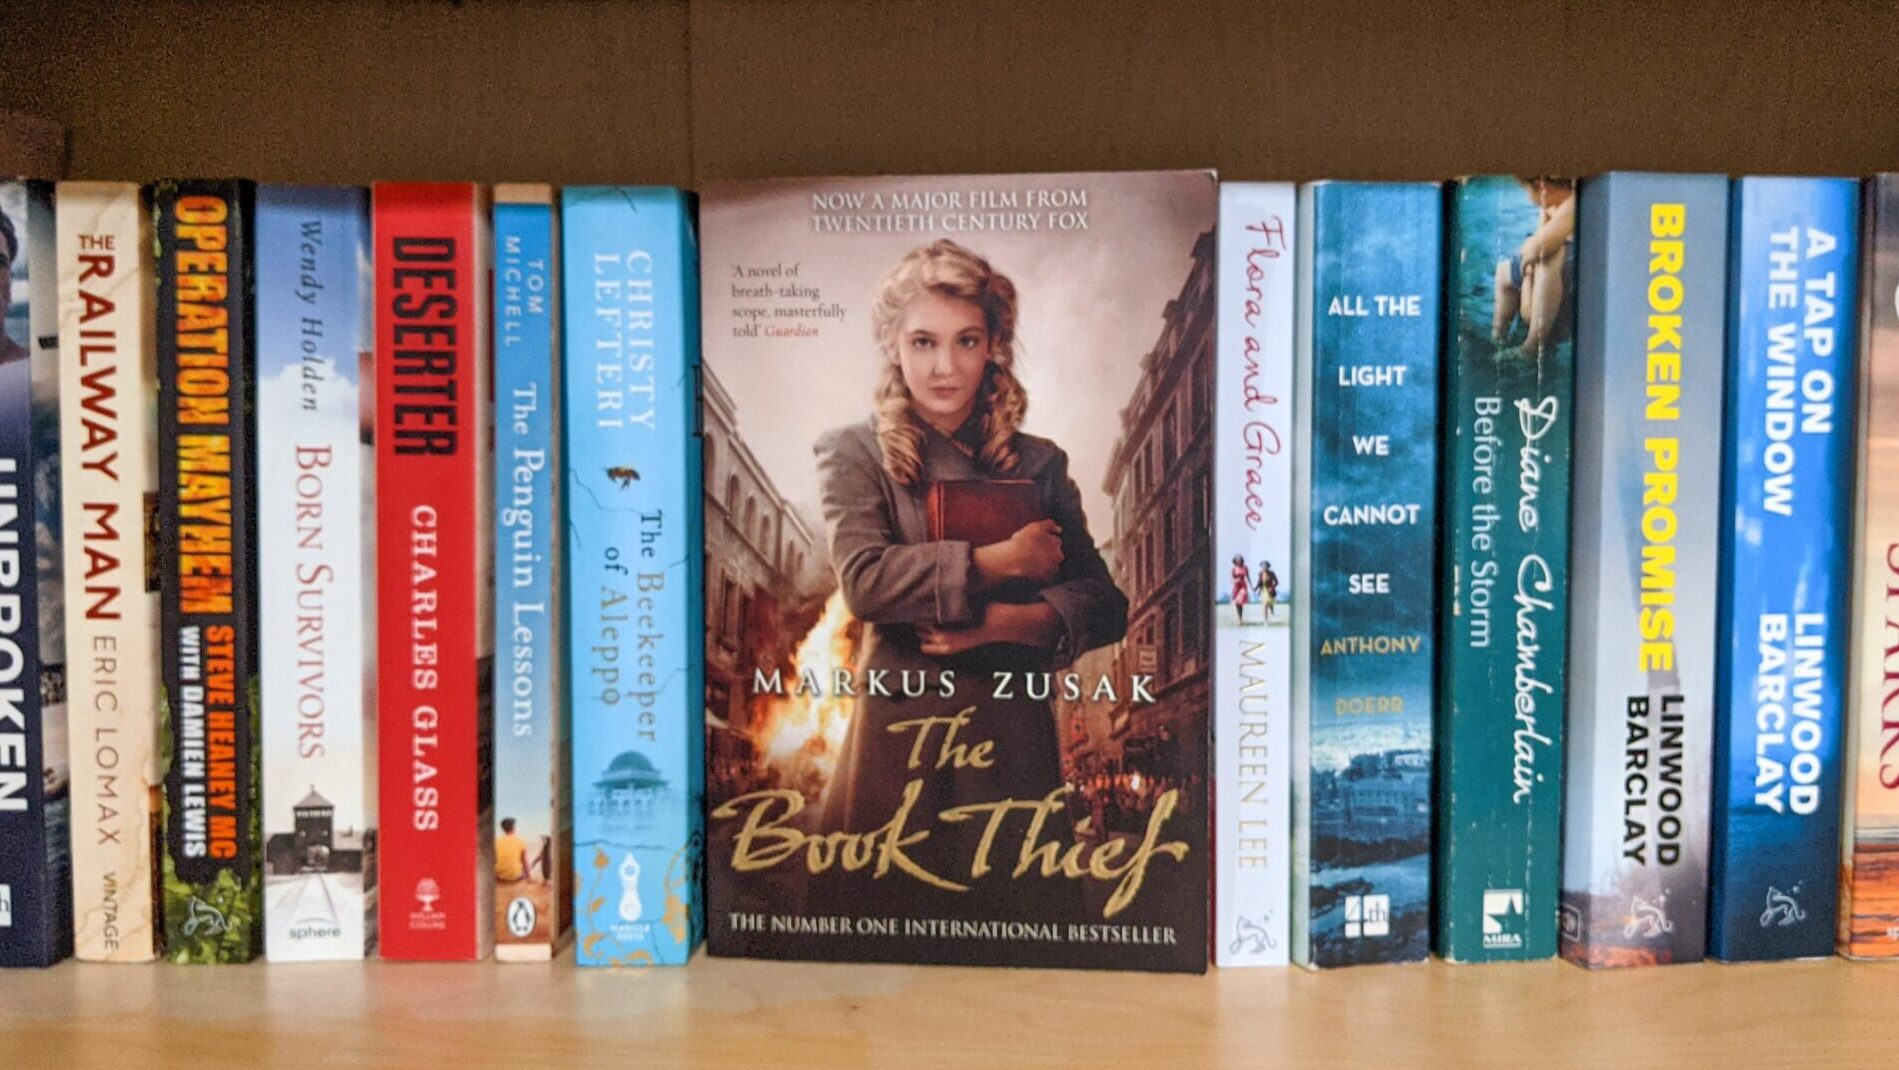 Bookshelves featuring The Book Thief